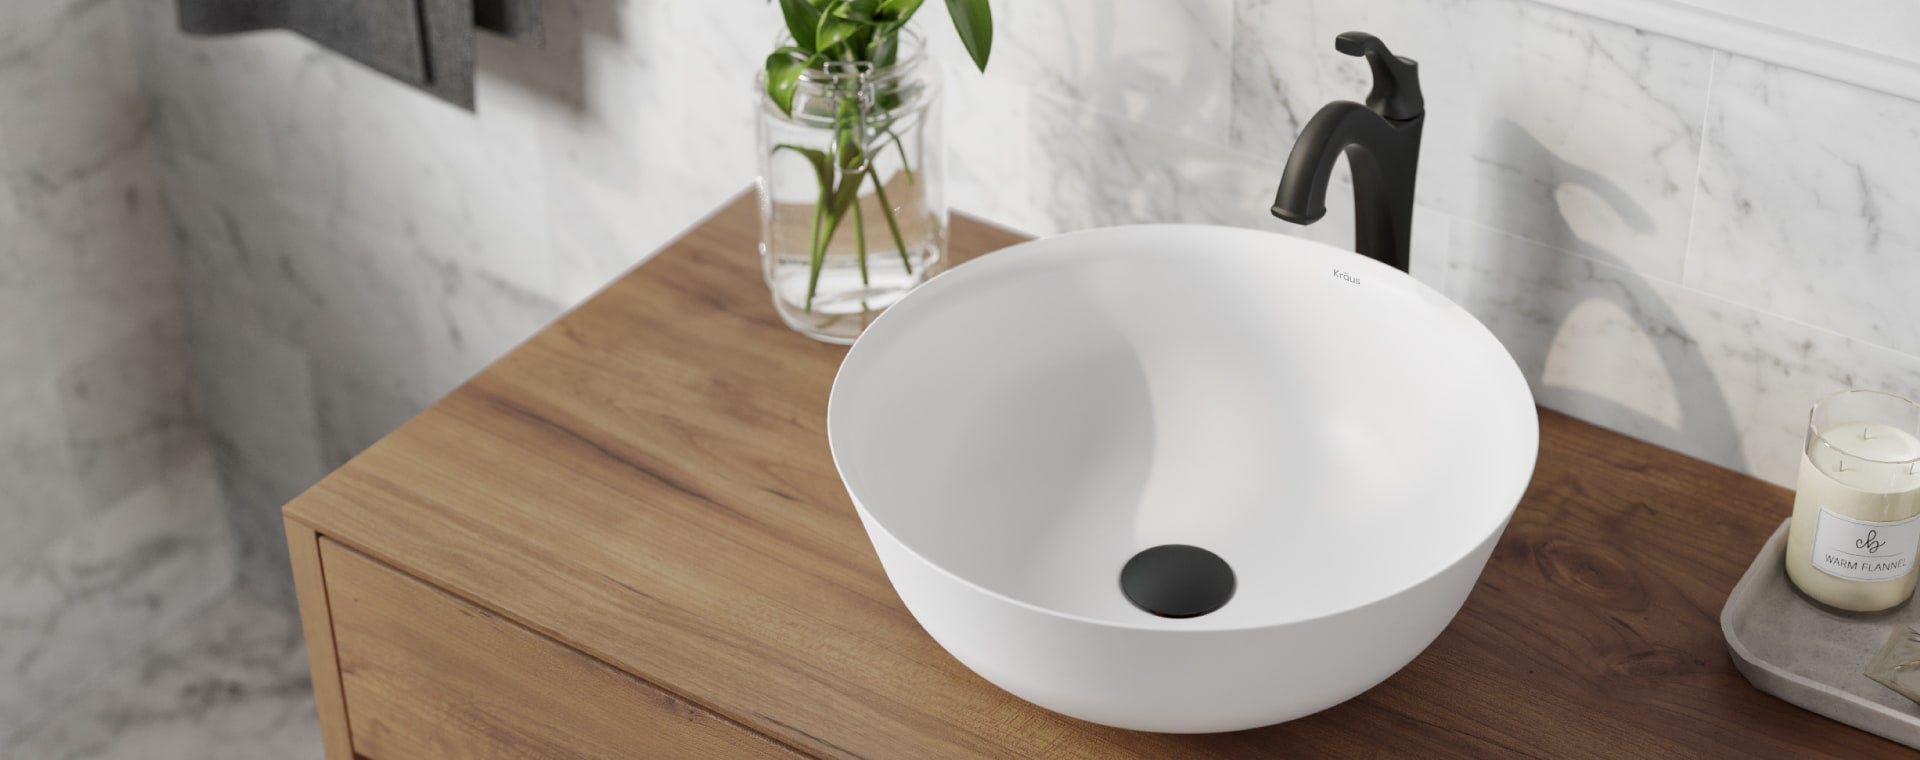 Kraus USA | Vessel Sinks | Bathroom Sinks